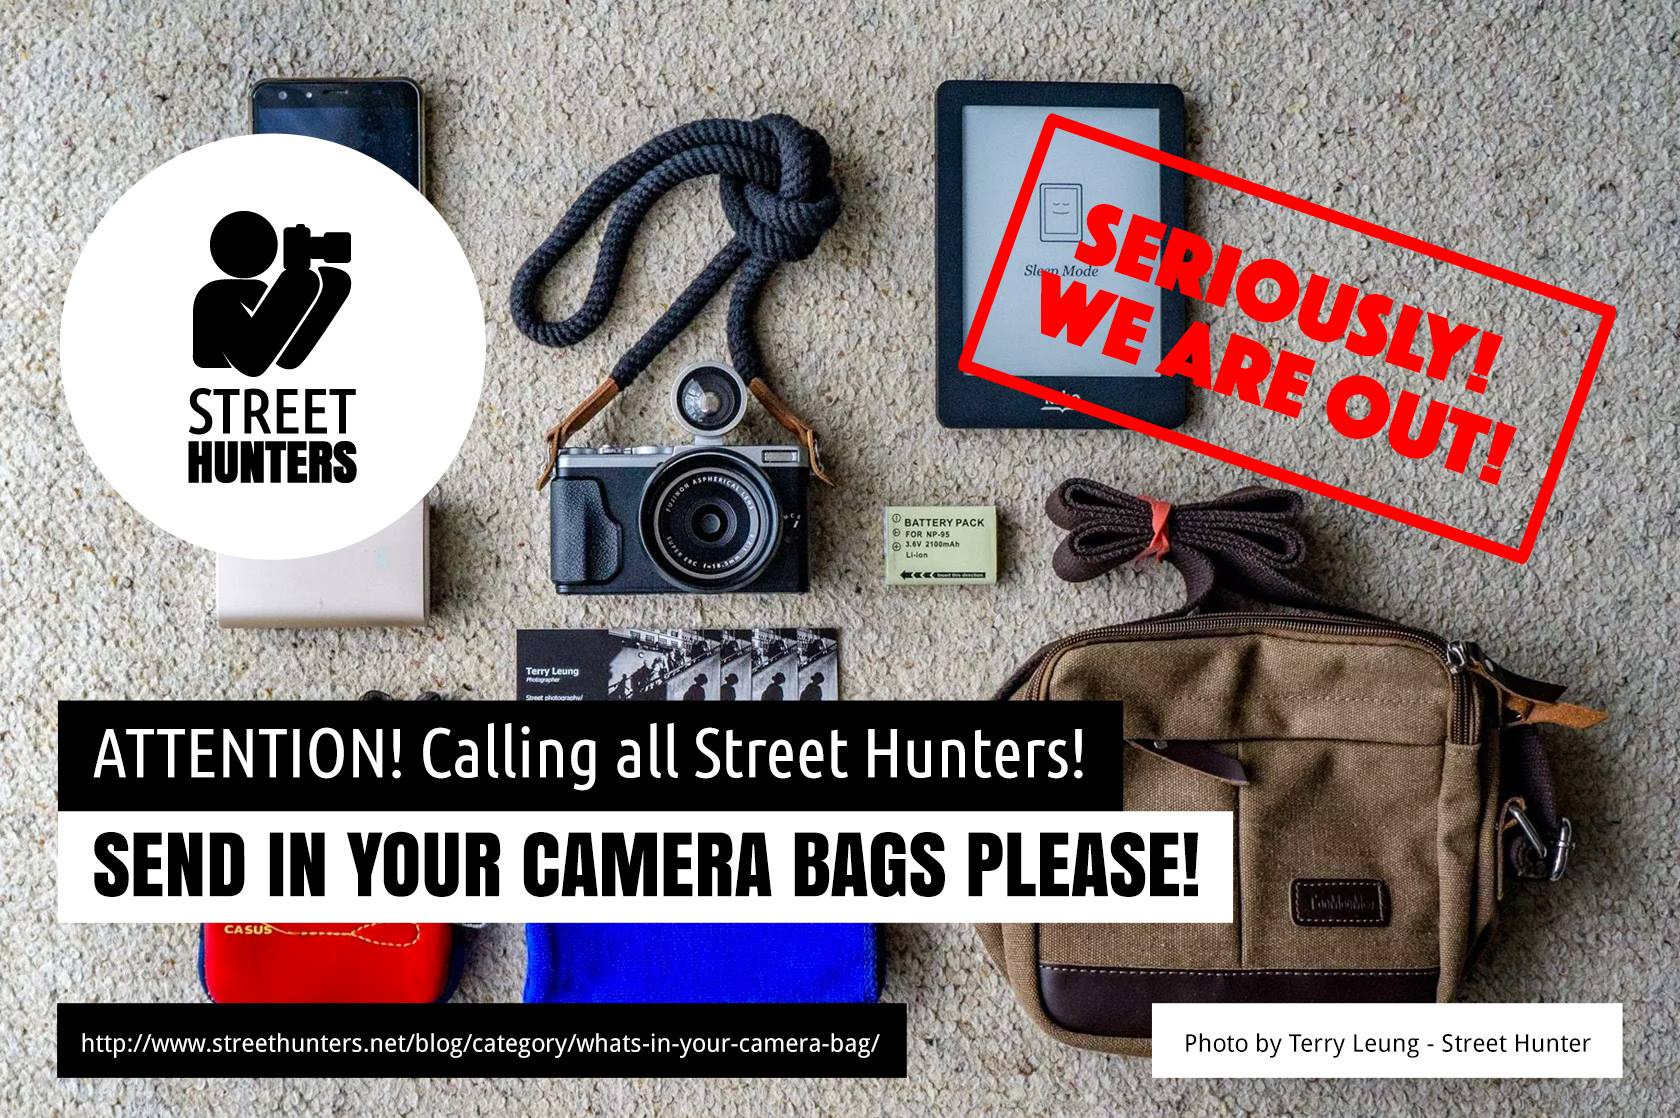 Request for new street photography camera bags